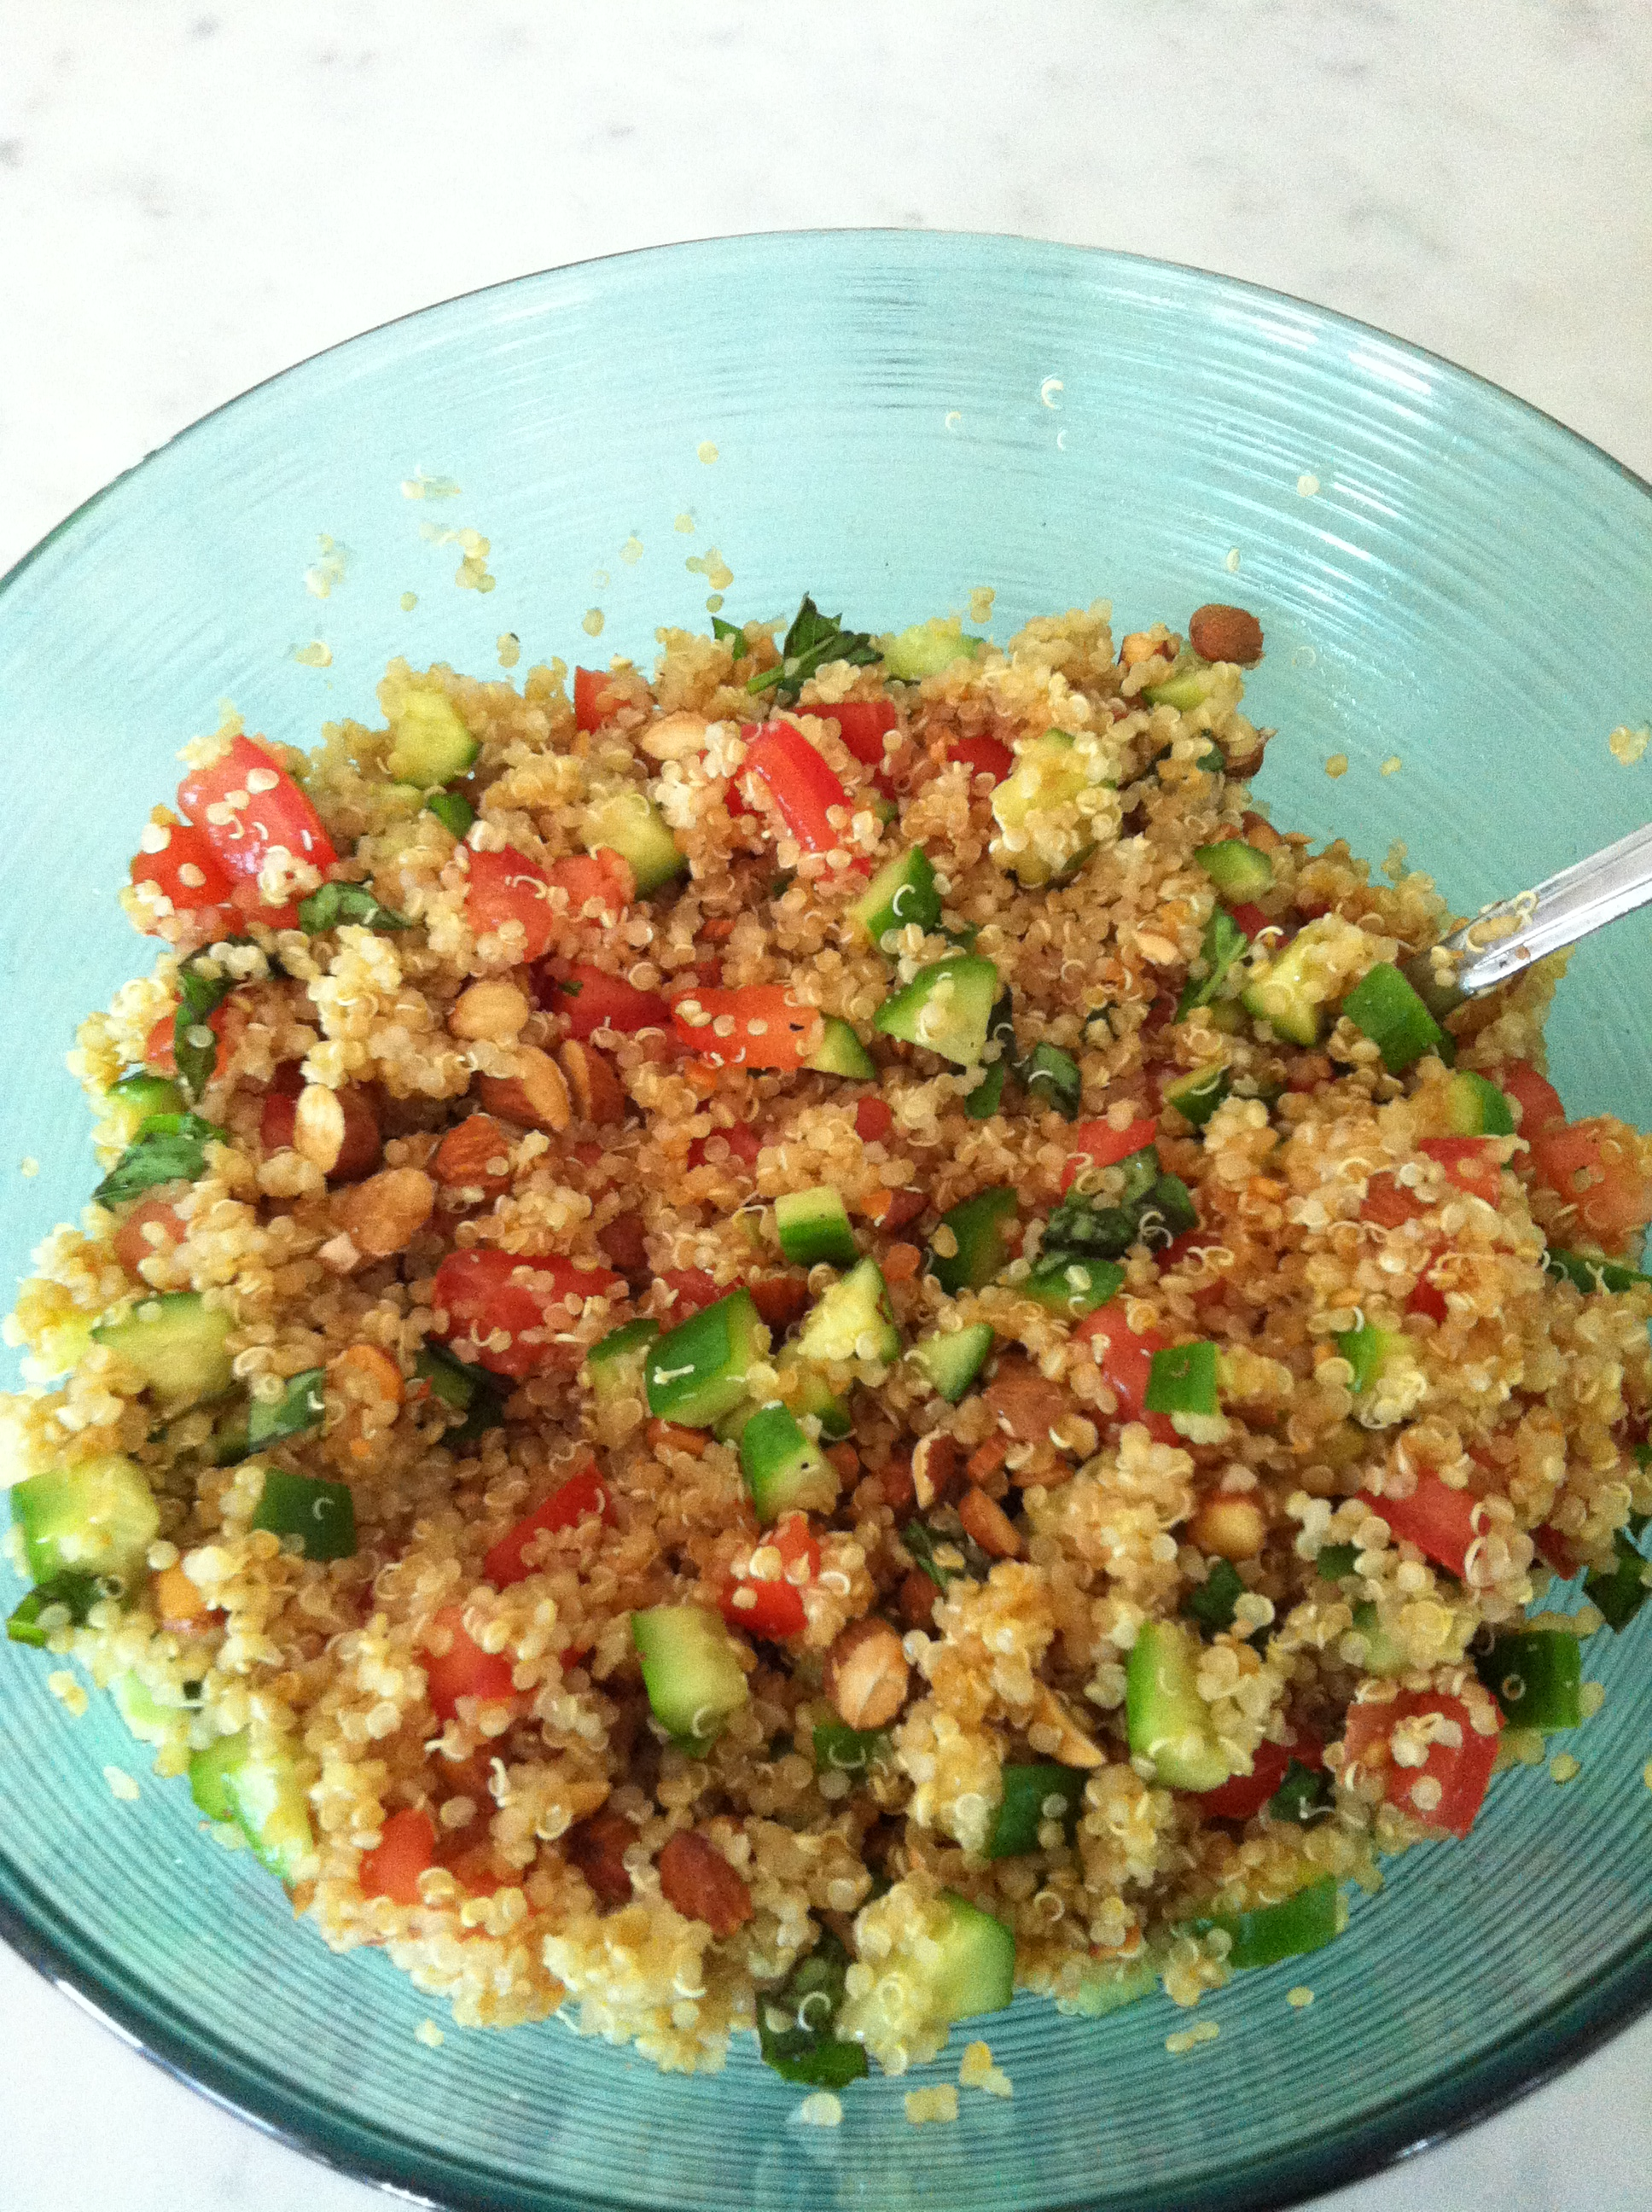 Warm Quinoa Salad with Toasted Almonds